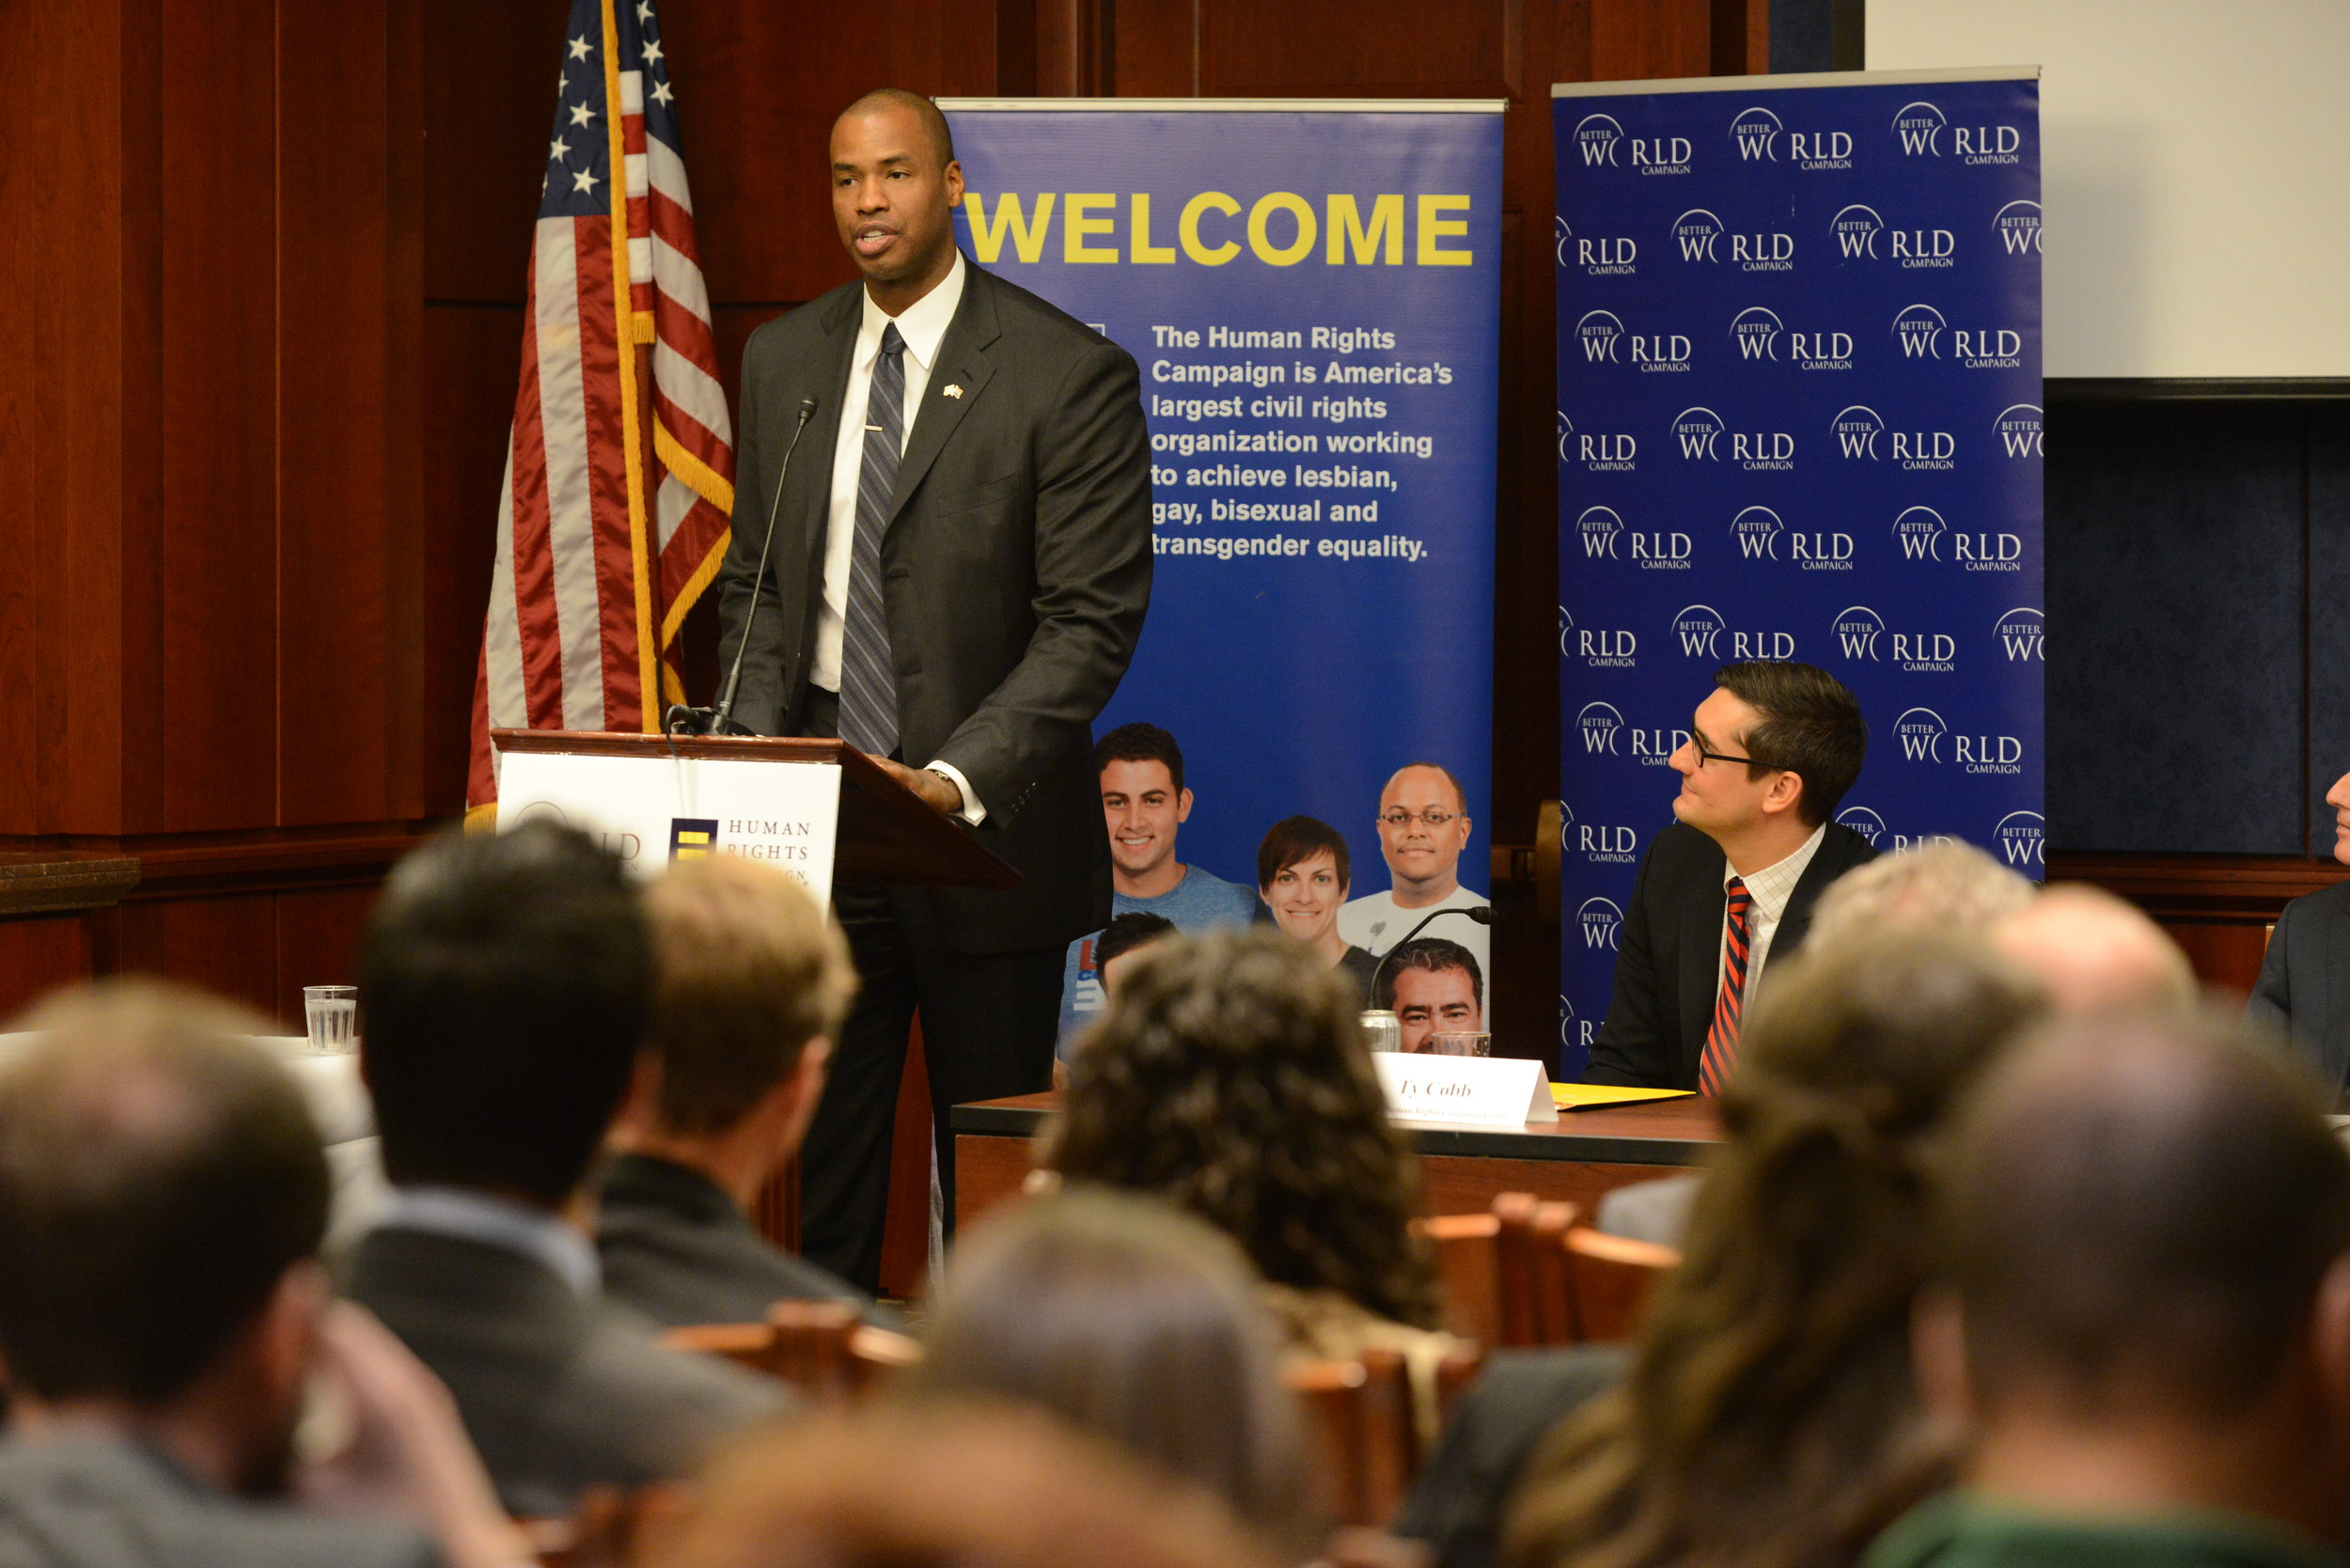 Retired NBA player Jason Collins speaking at UN Human Rights Day event in DC